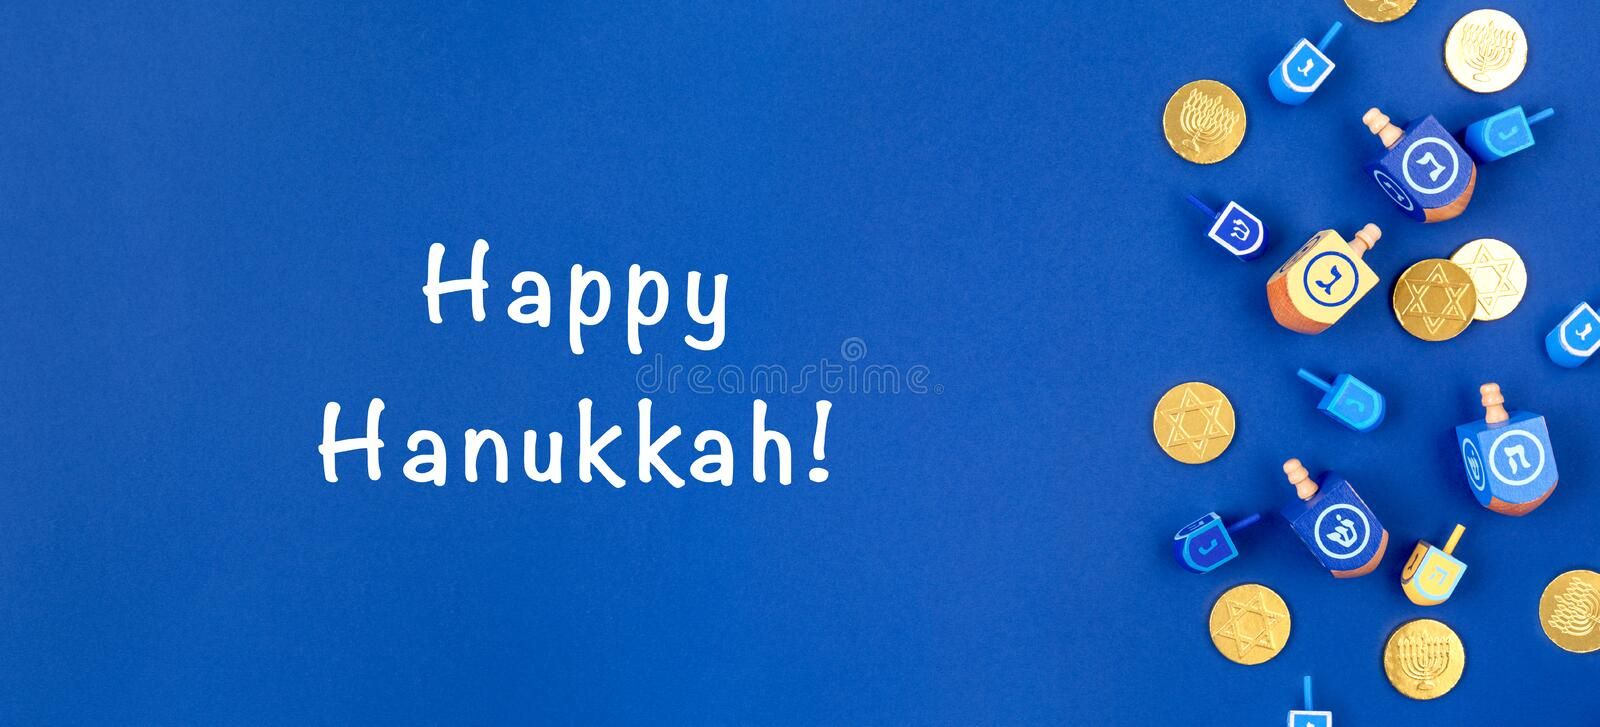 Dark blue background with dreidels and chocolate coins and Happy Hanukkah wording. Hanukkah and judaic holiday concept. Dark blue background with multicolor royalty free stock photography